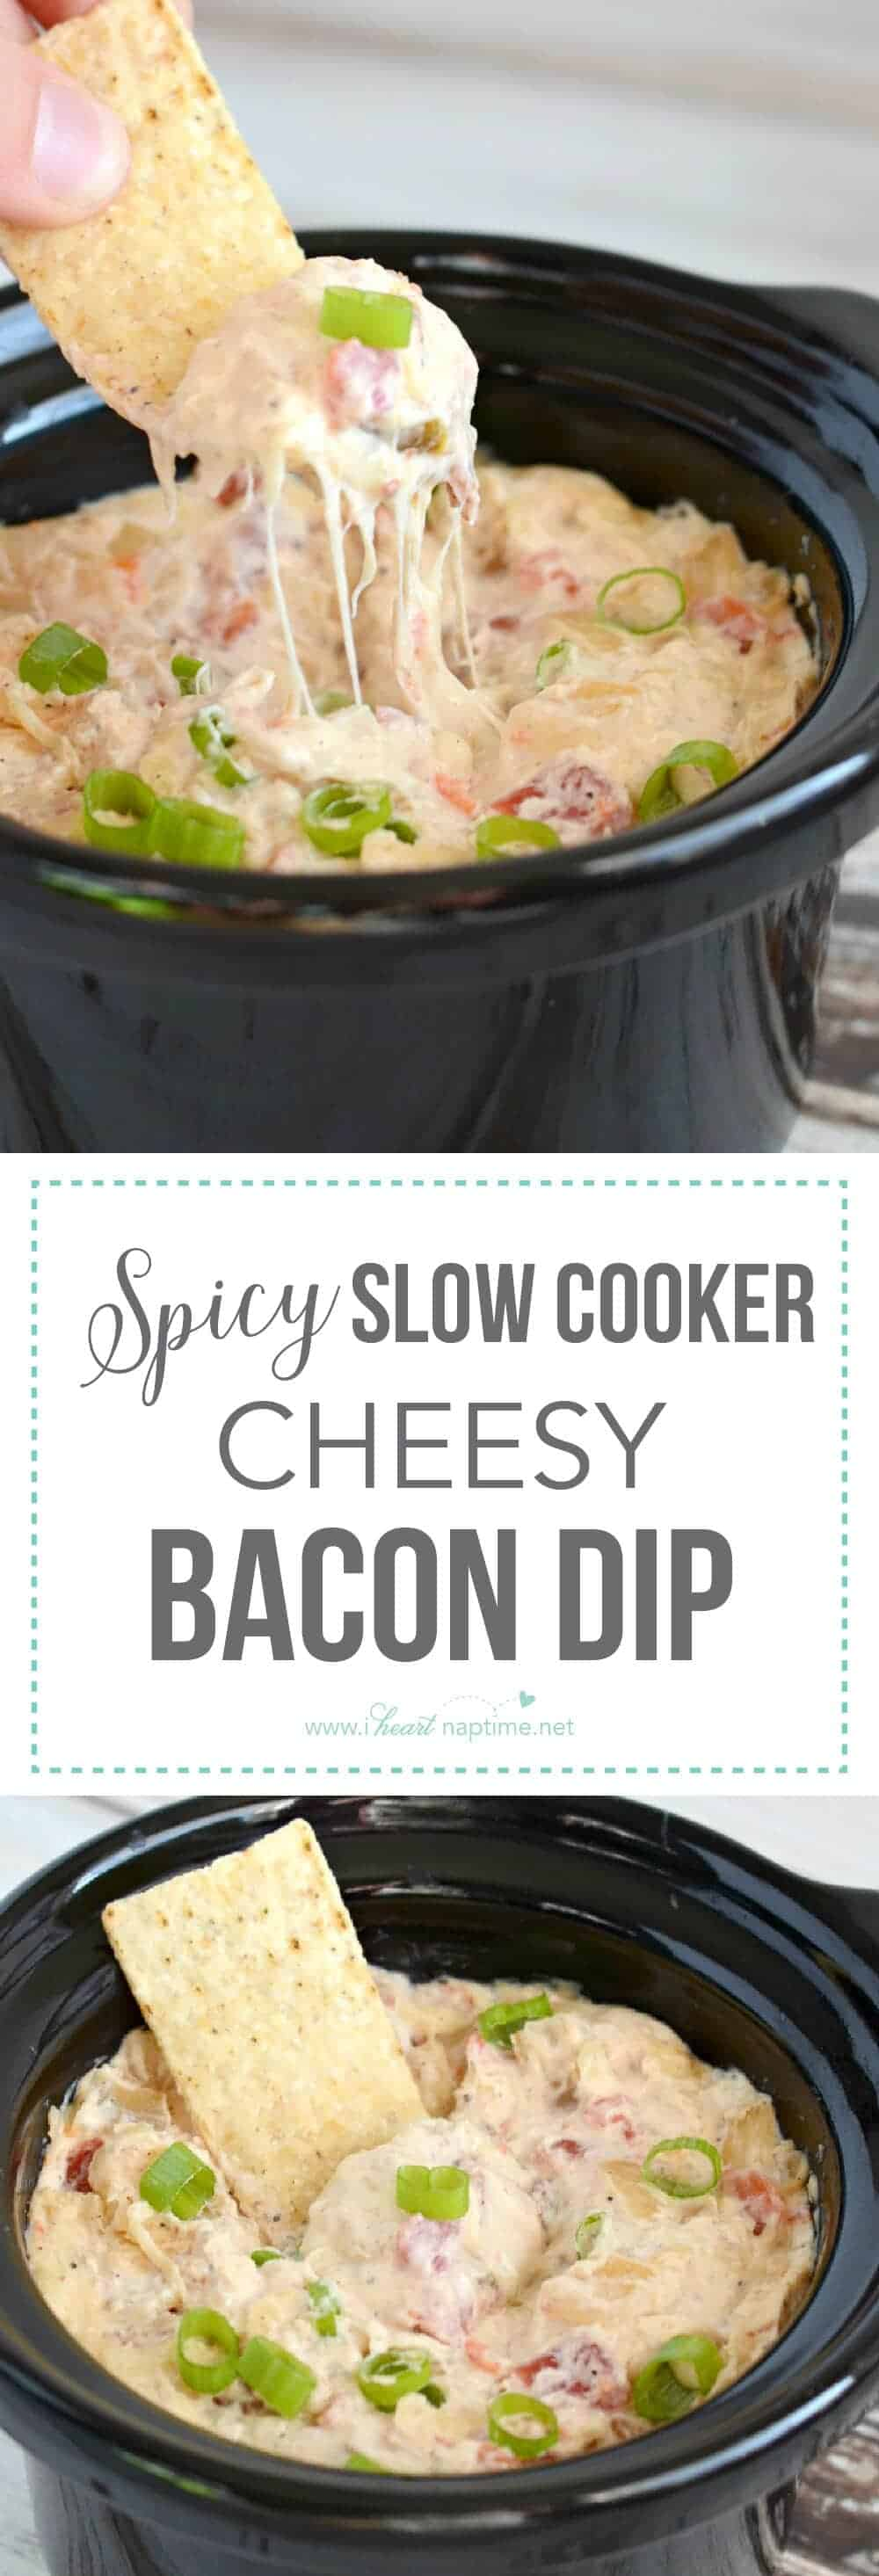 This Slow Cooker Cheesy Bacon Dip has just a bit of a kick, and it is a simply delicious appetizer. A sure fire crowd-pleaser!